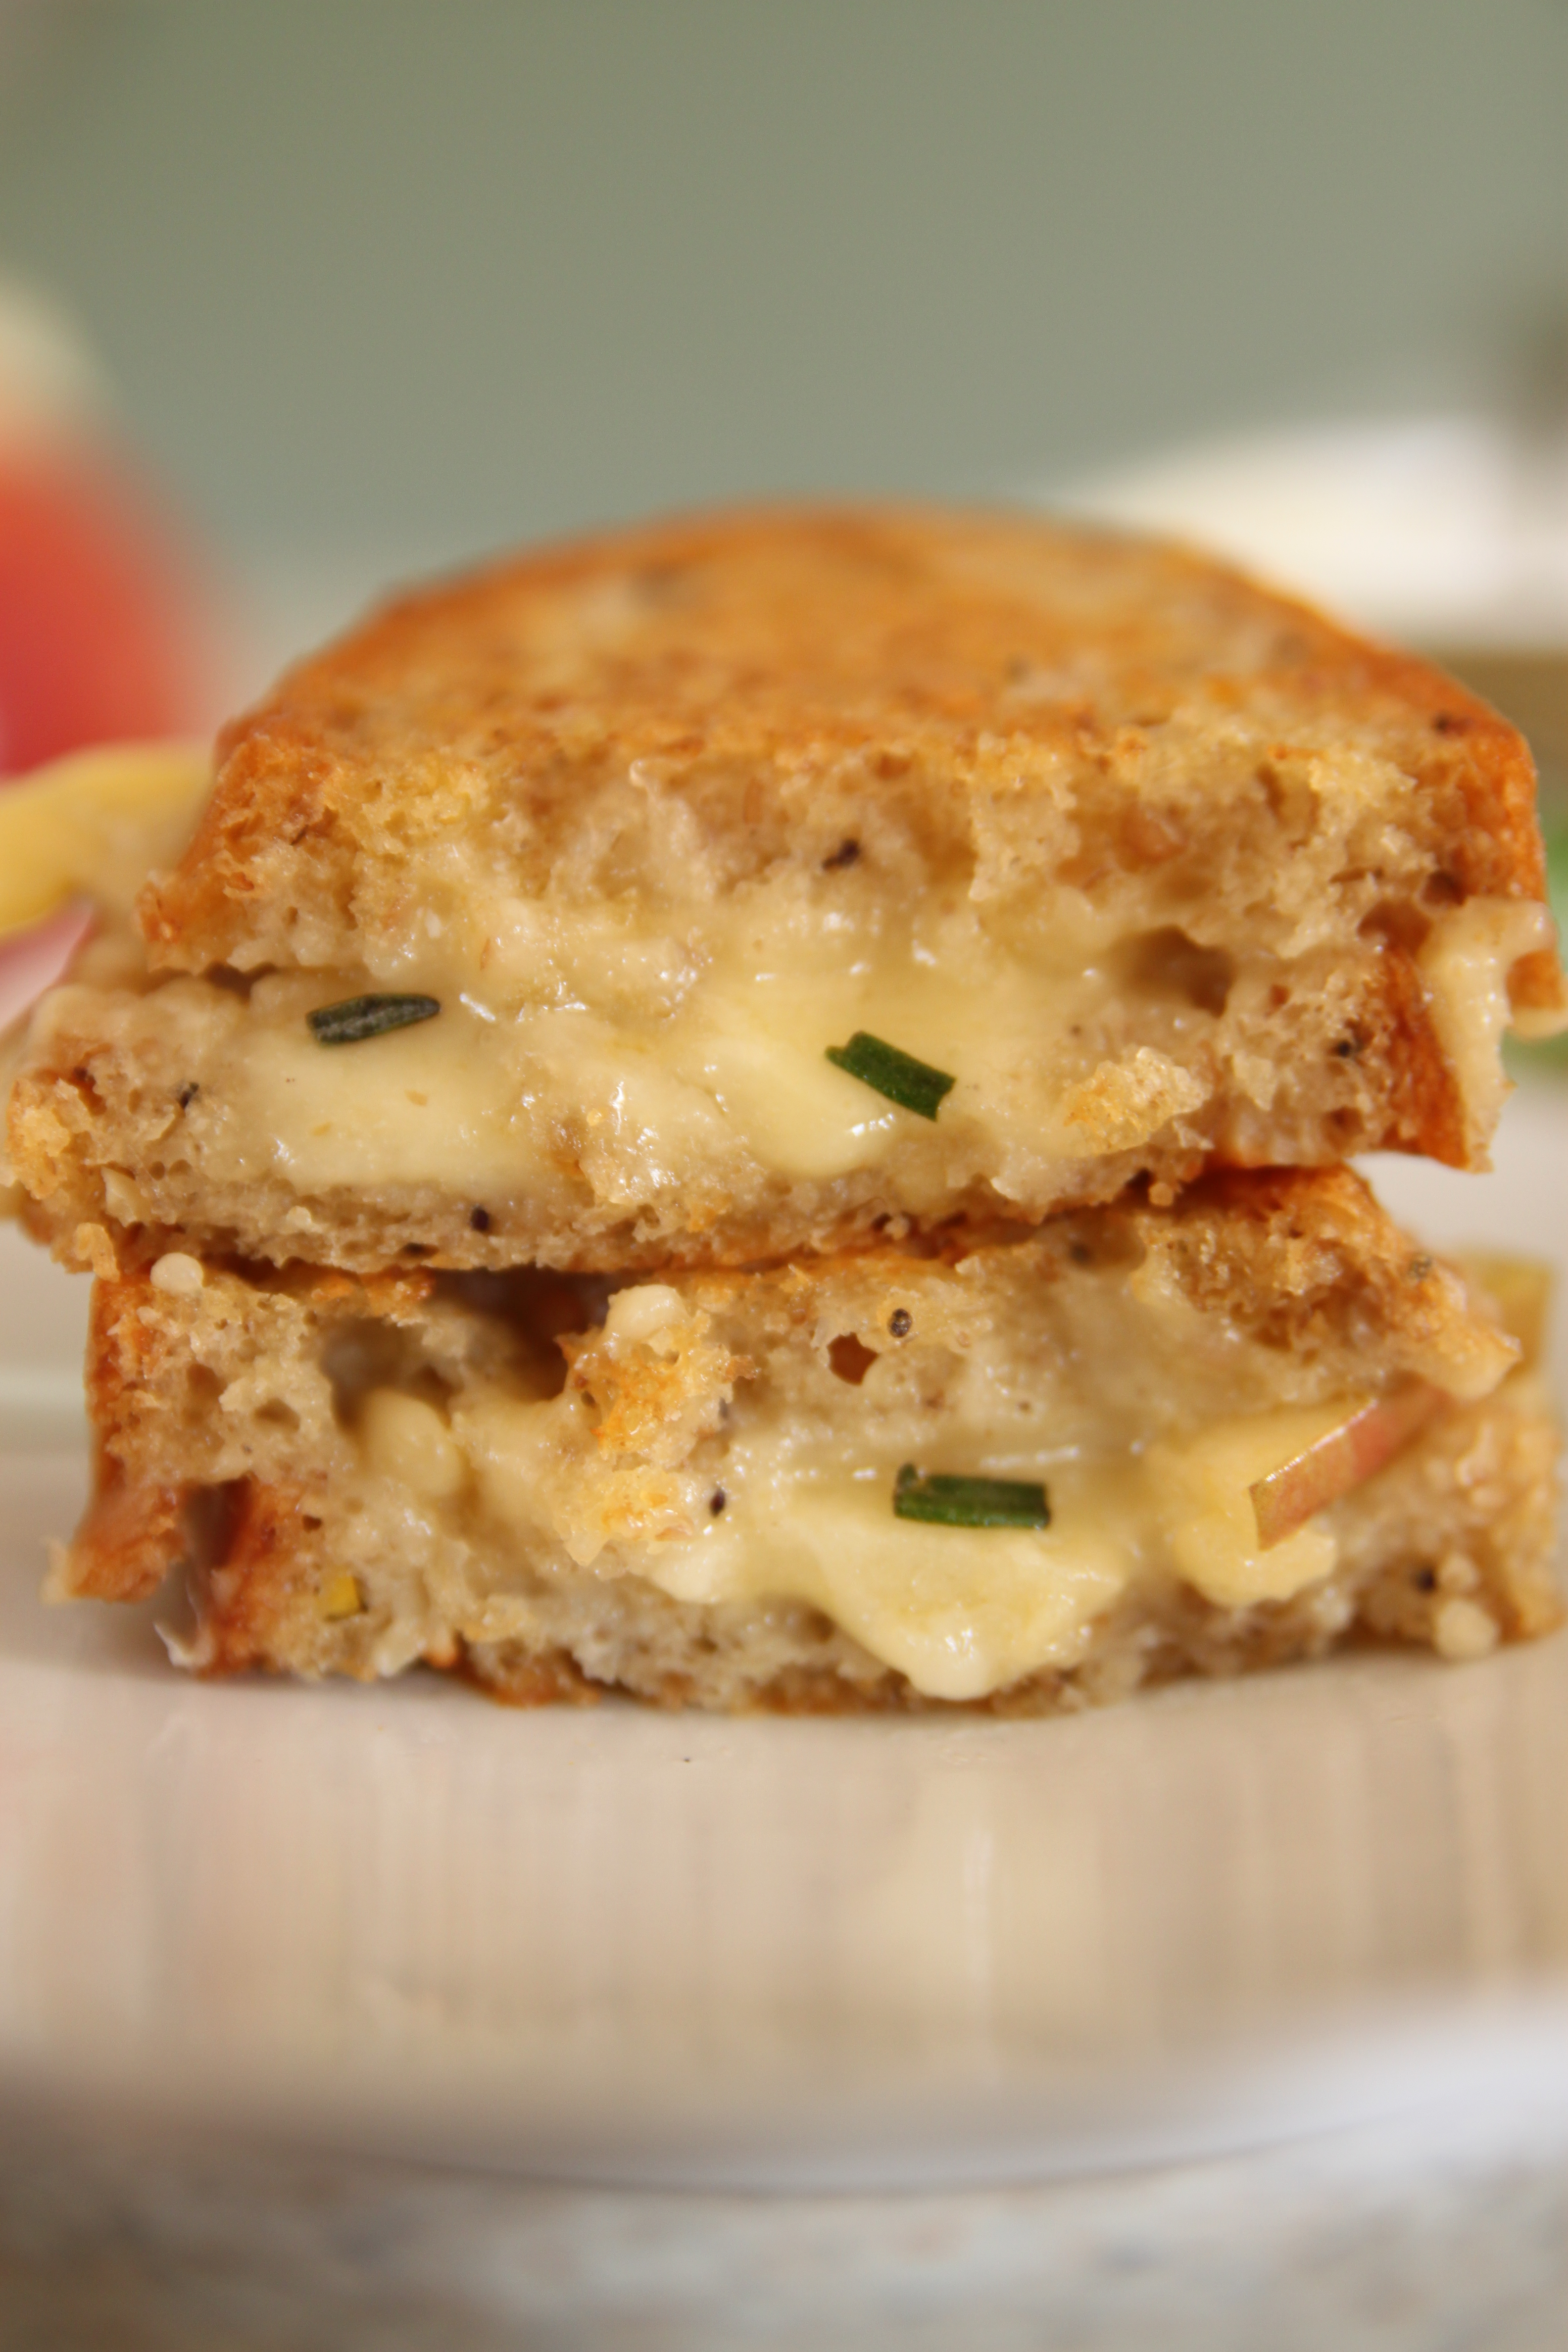 Apples + cheddar + herby nutty butter = TruLuv4Ever